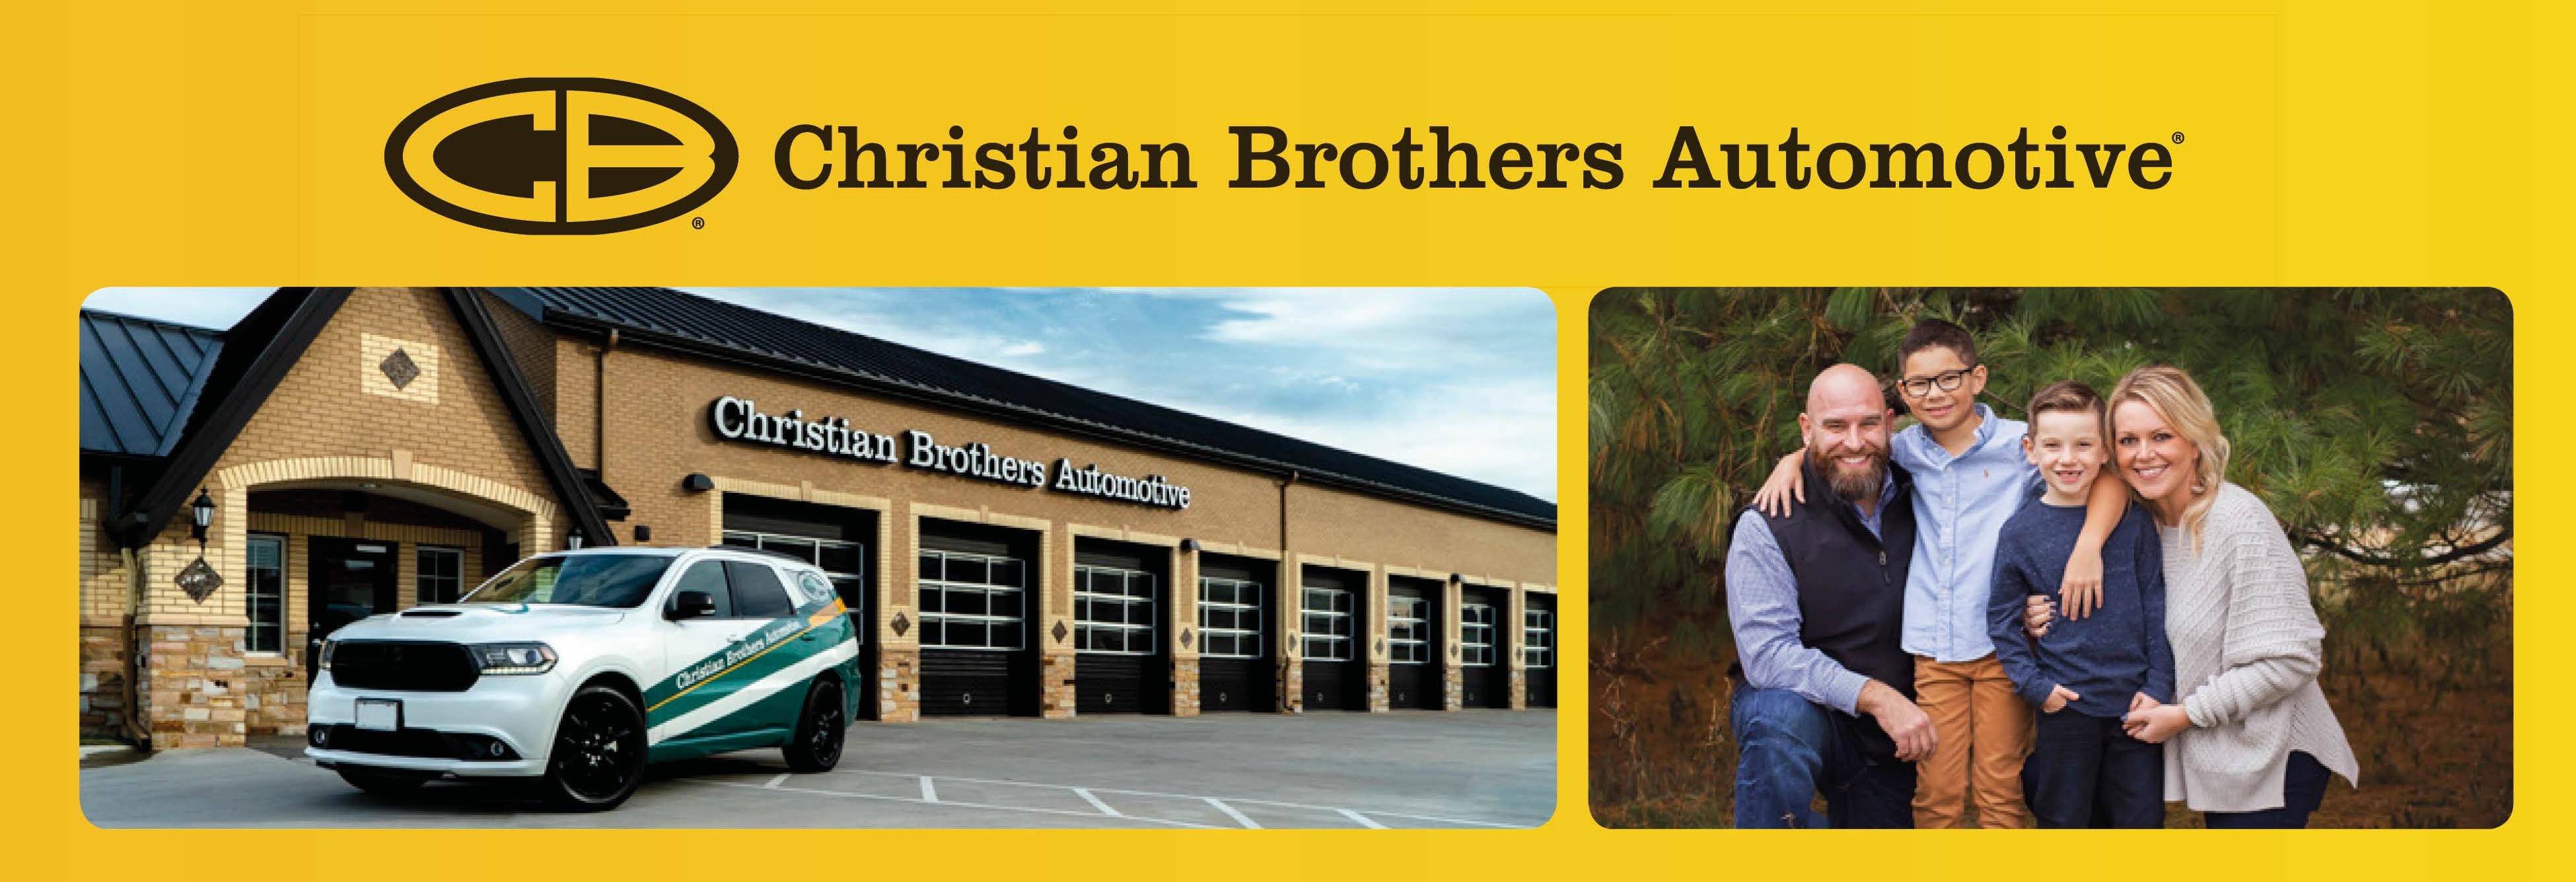 christian brothers automotive family business logo clive iowa